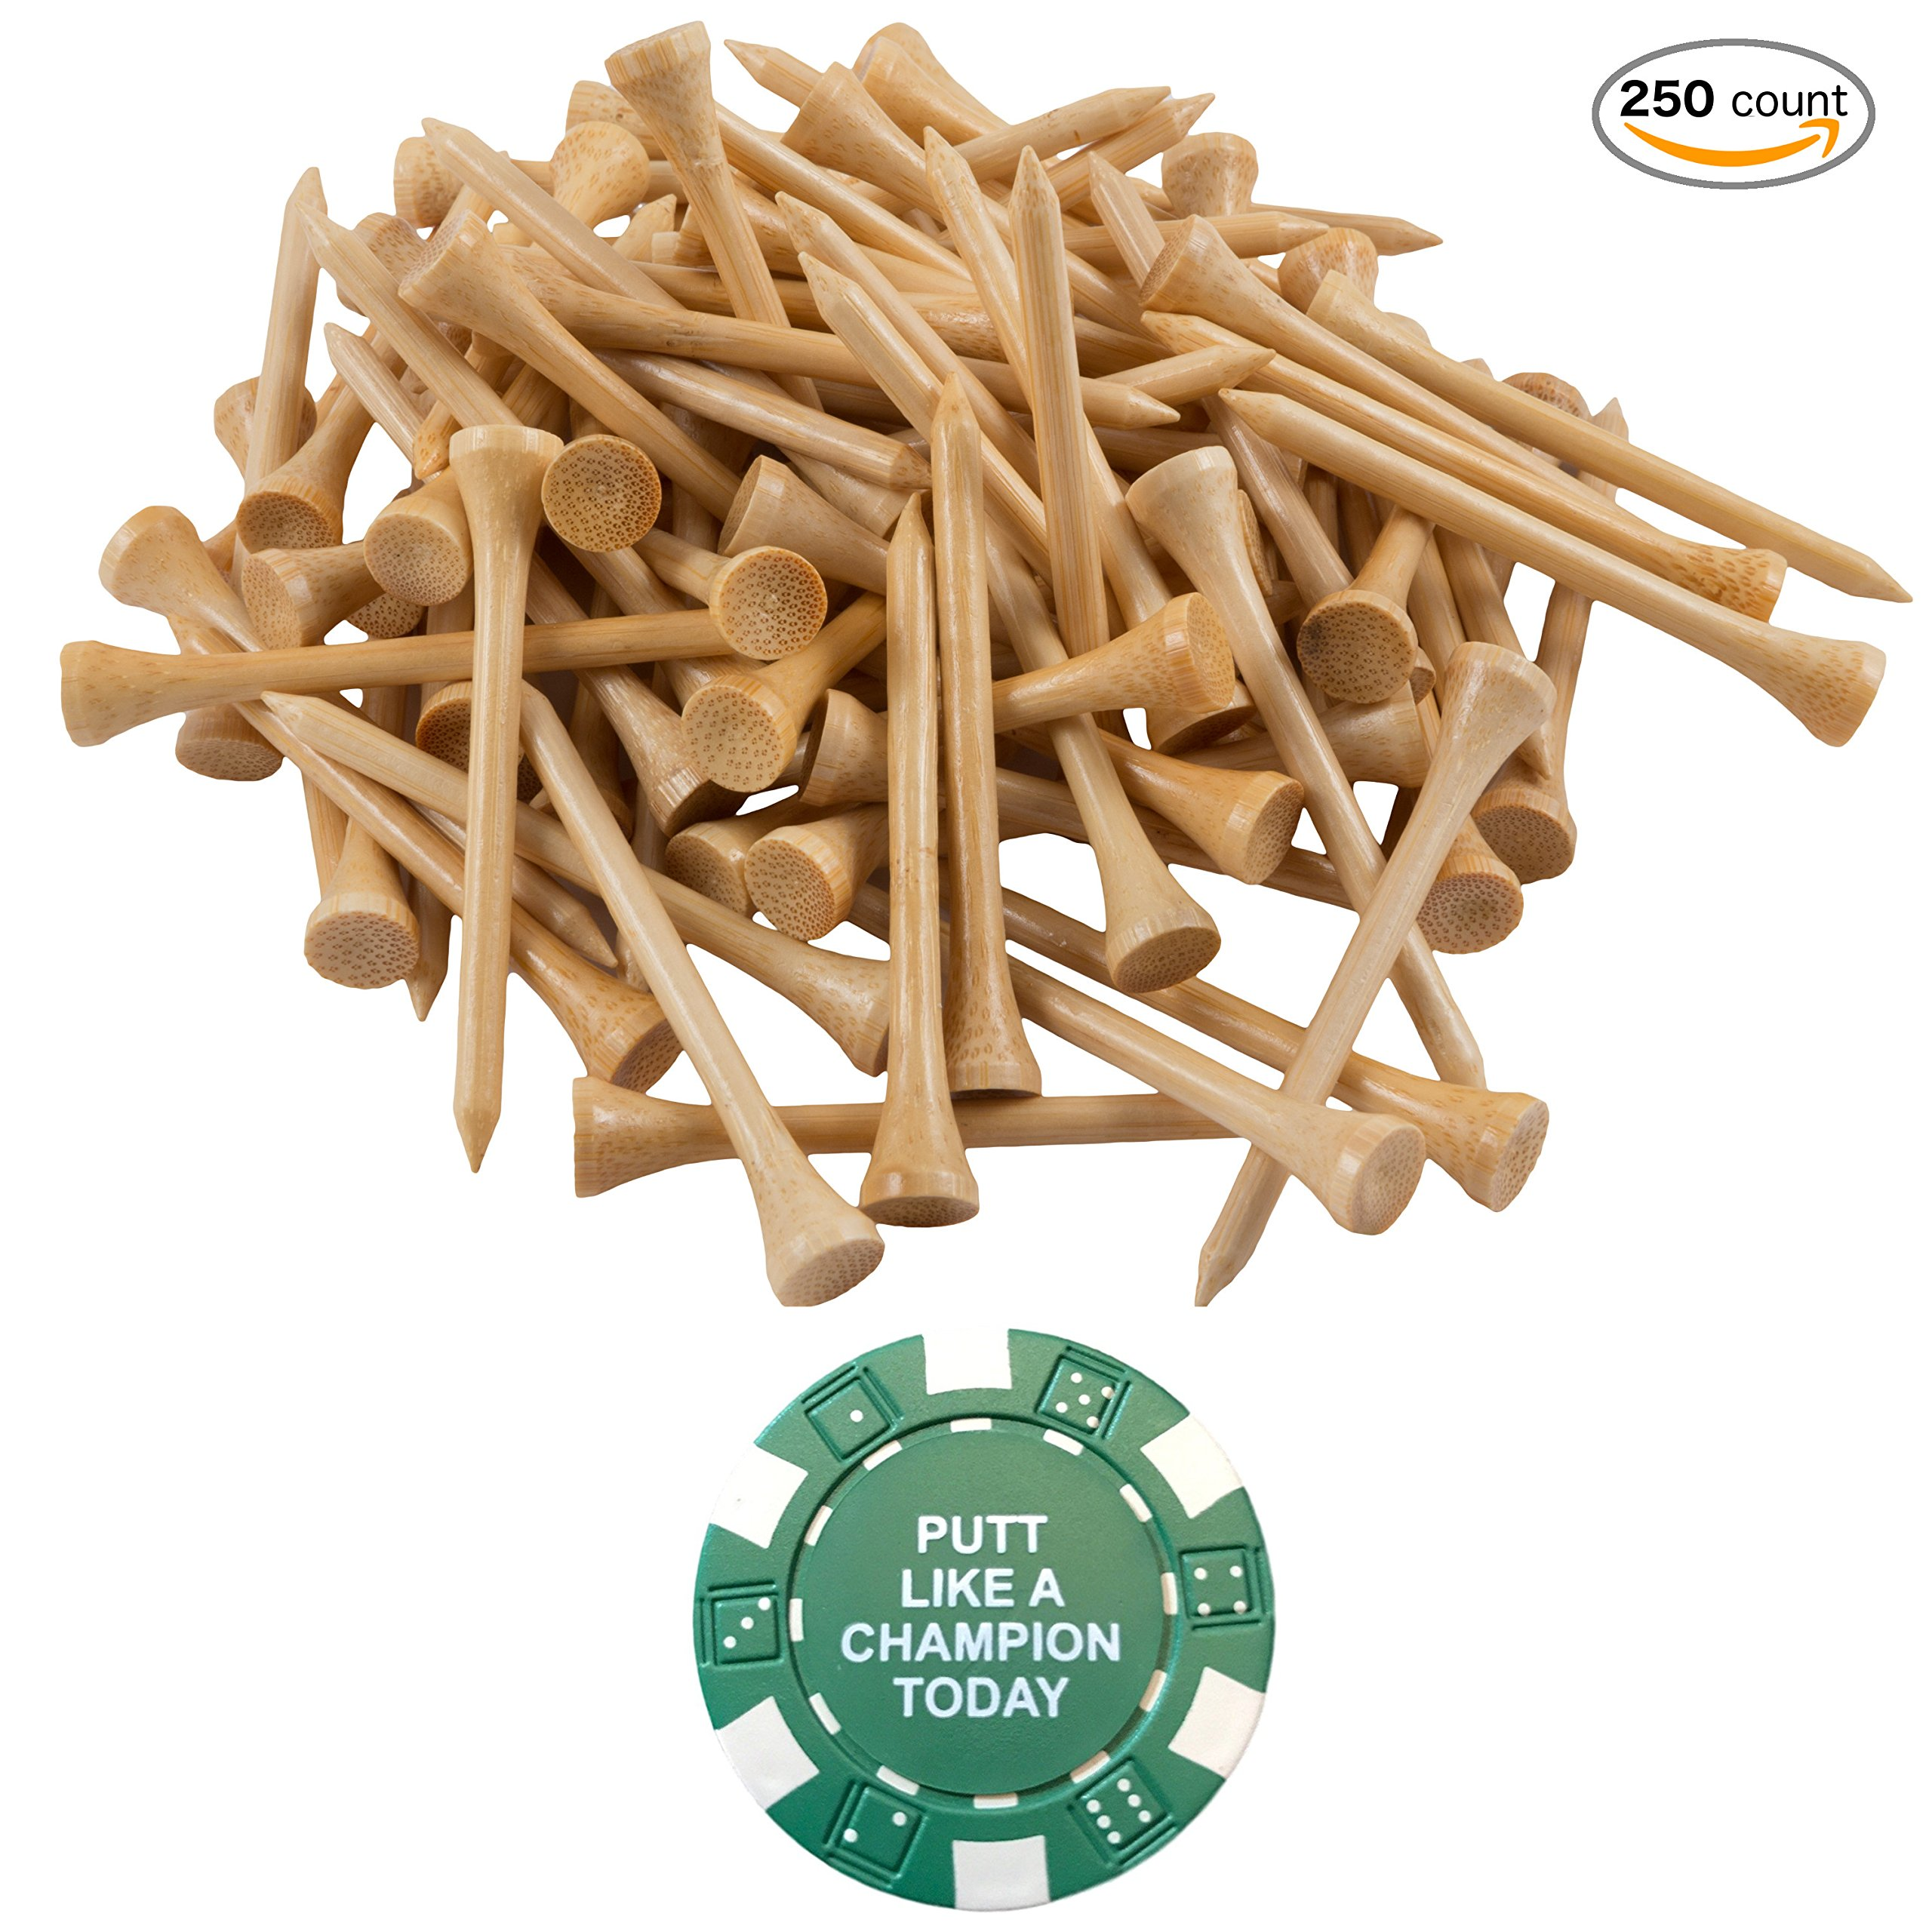 Wedge Guys 250 Count Professional Bamboo Golf Tees 2-3/4 inch - Free Poker Chip Ball Marker - Stronger Than Wood Tees Biodegradable & Less Friction PGA Approved